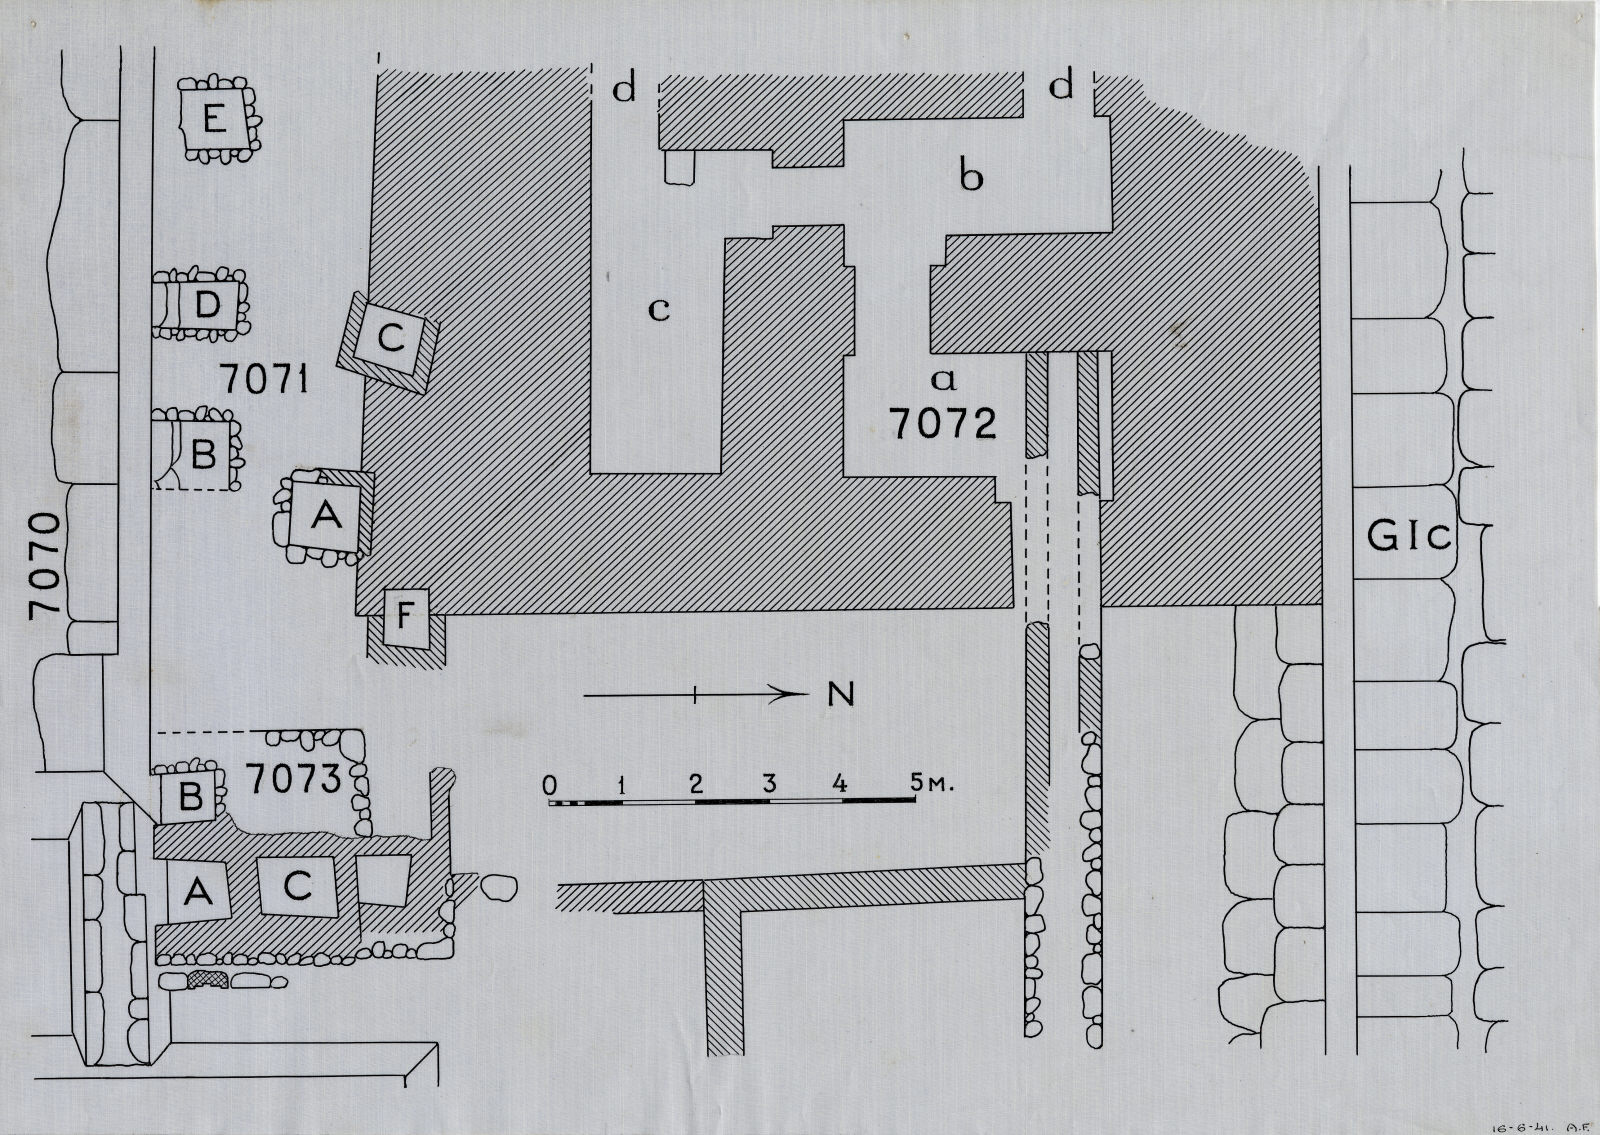 Maps and plans: Plan of Cemetery G 7000, NW corner